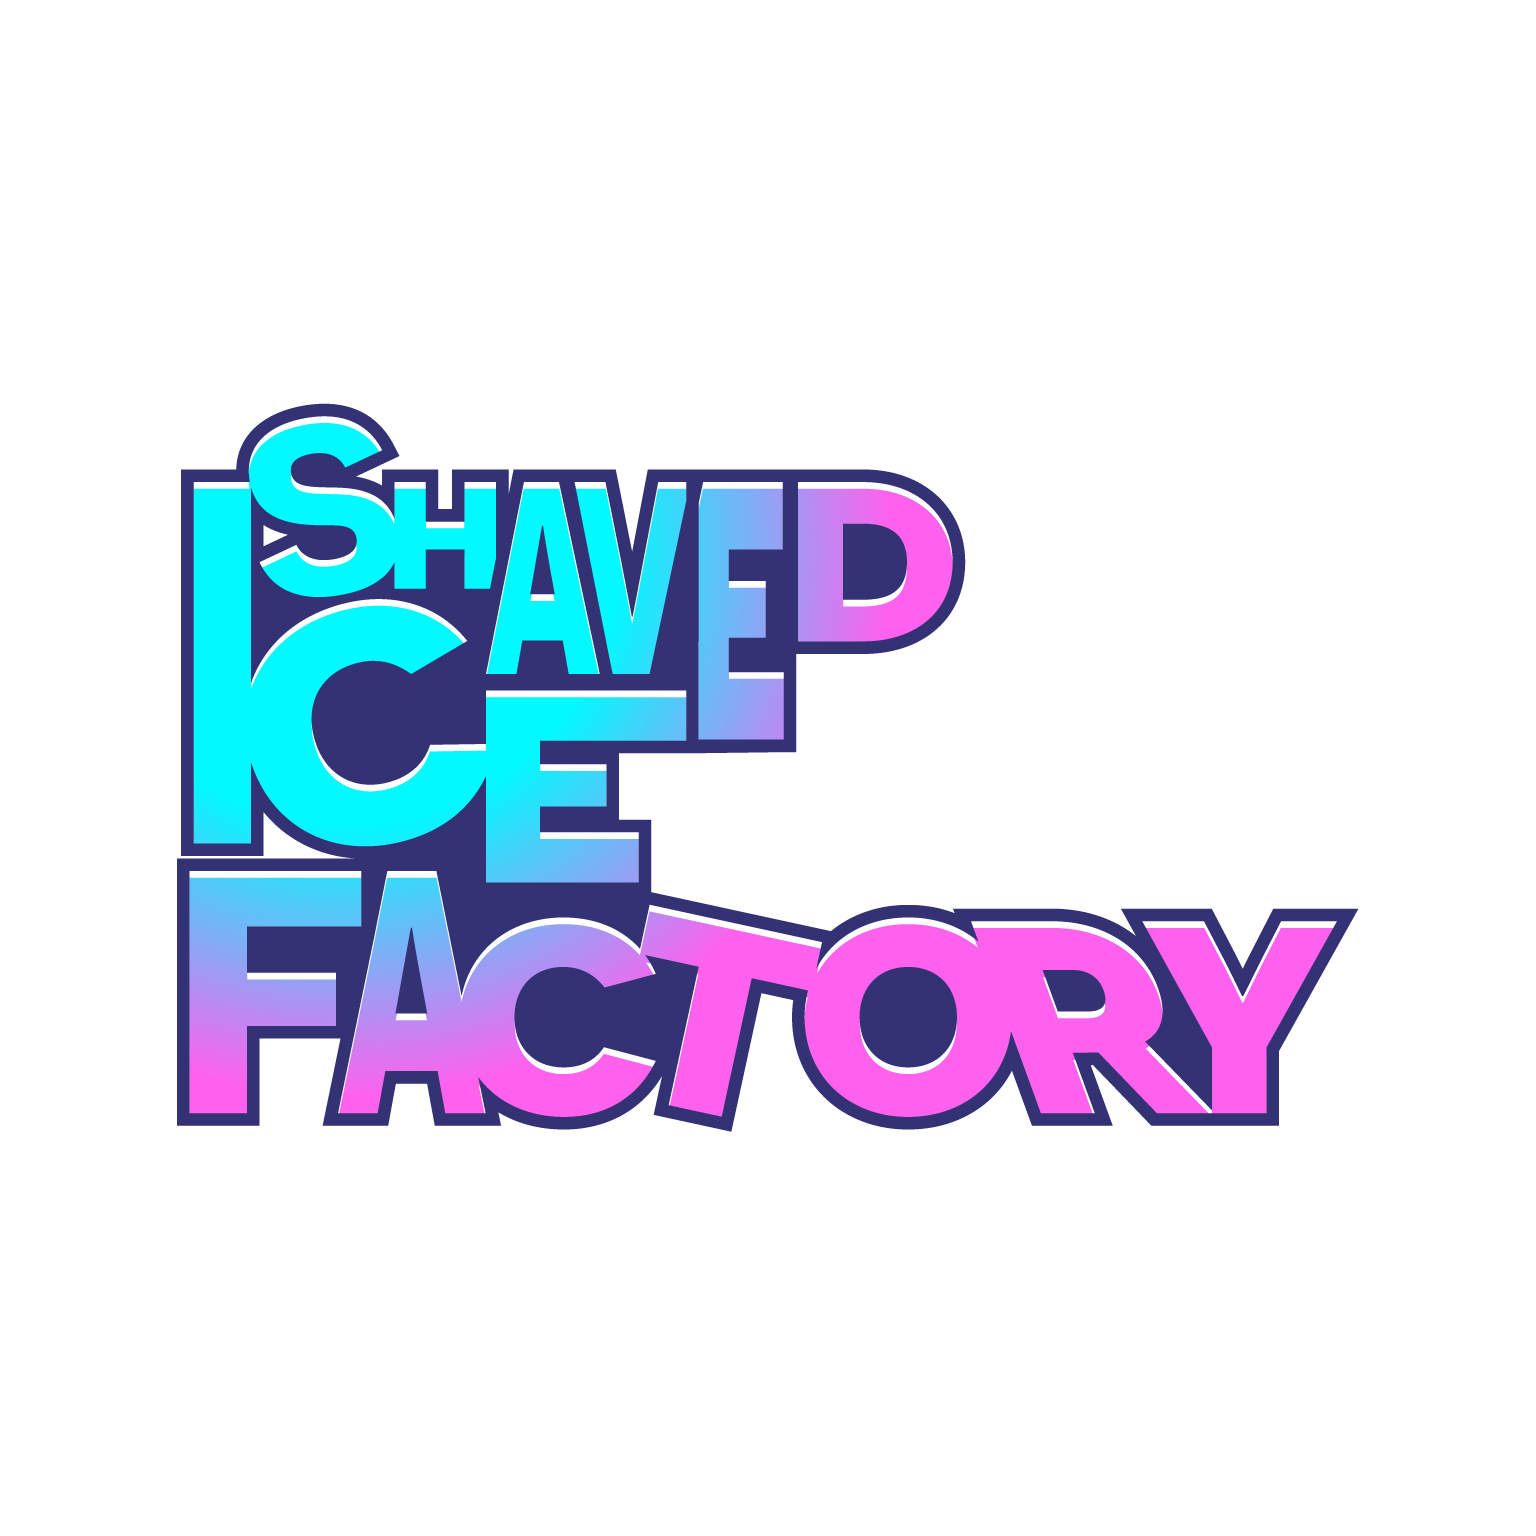 Shaved Ice Factory